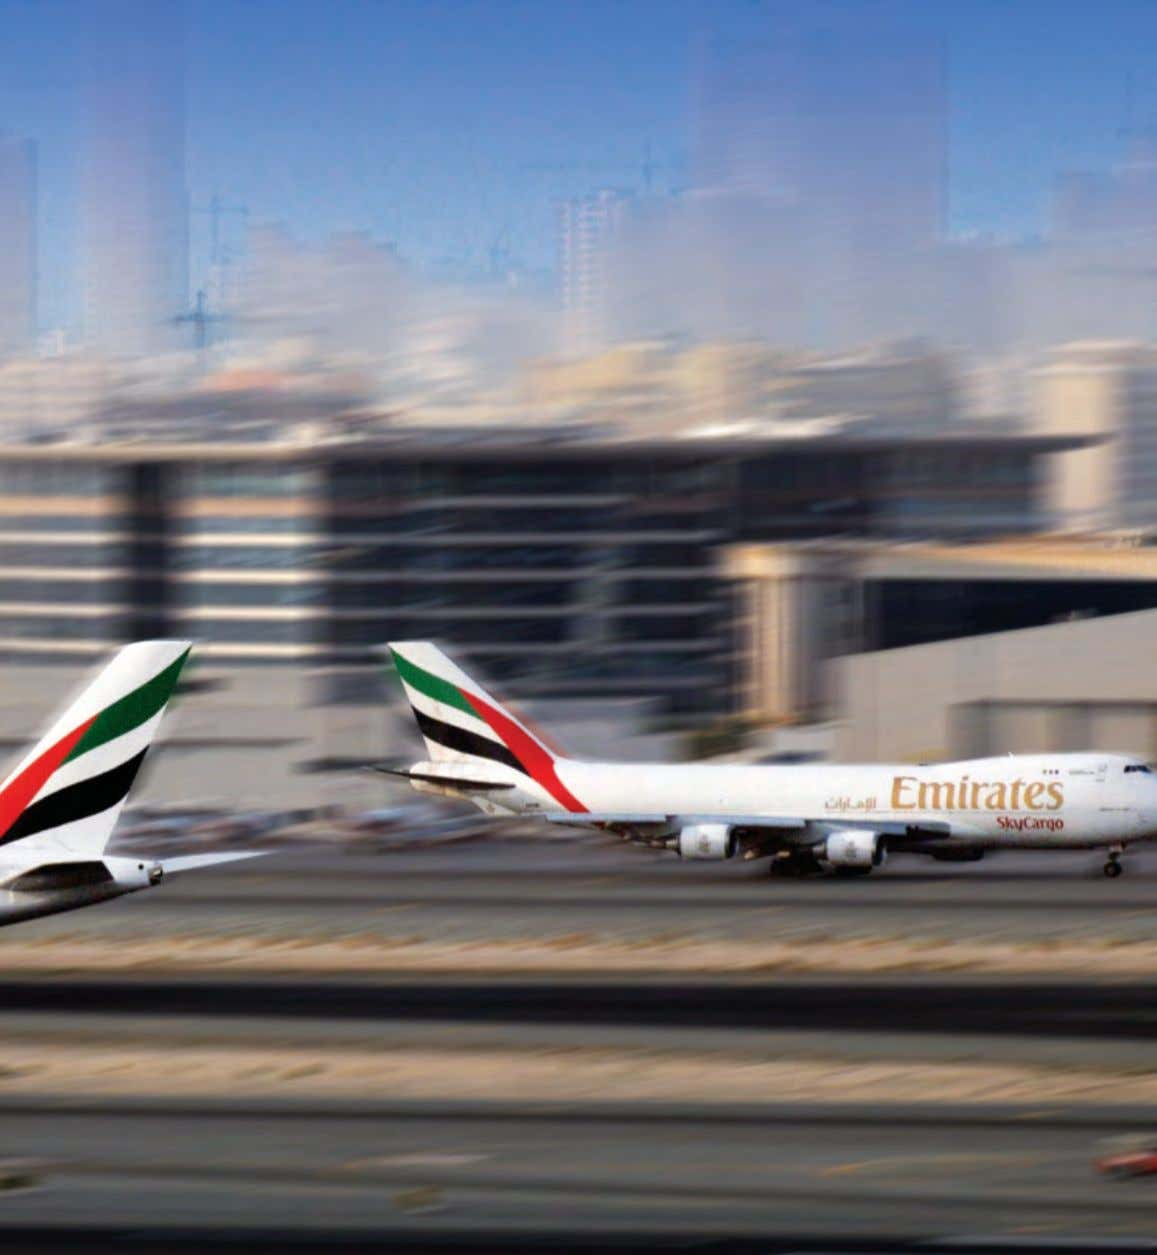 """The future has arrived"". Sheikh Ahmed bin Saeed Al Maktoum, Chairman & Chief Executive, Emirates Airline"